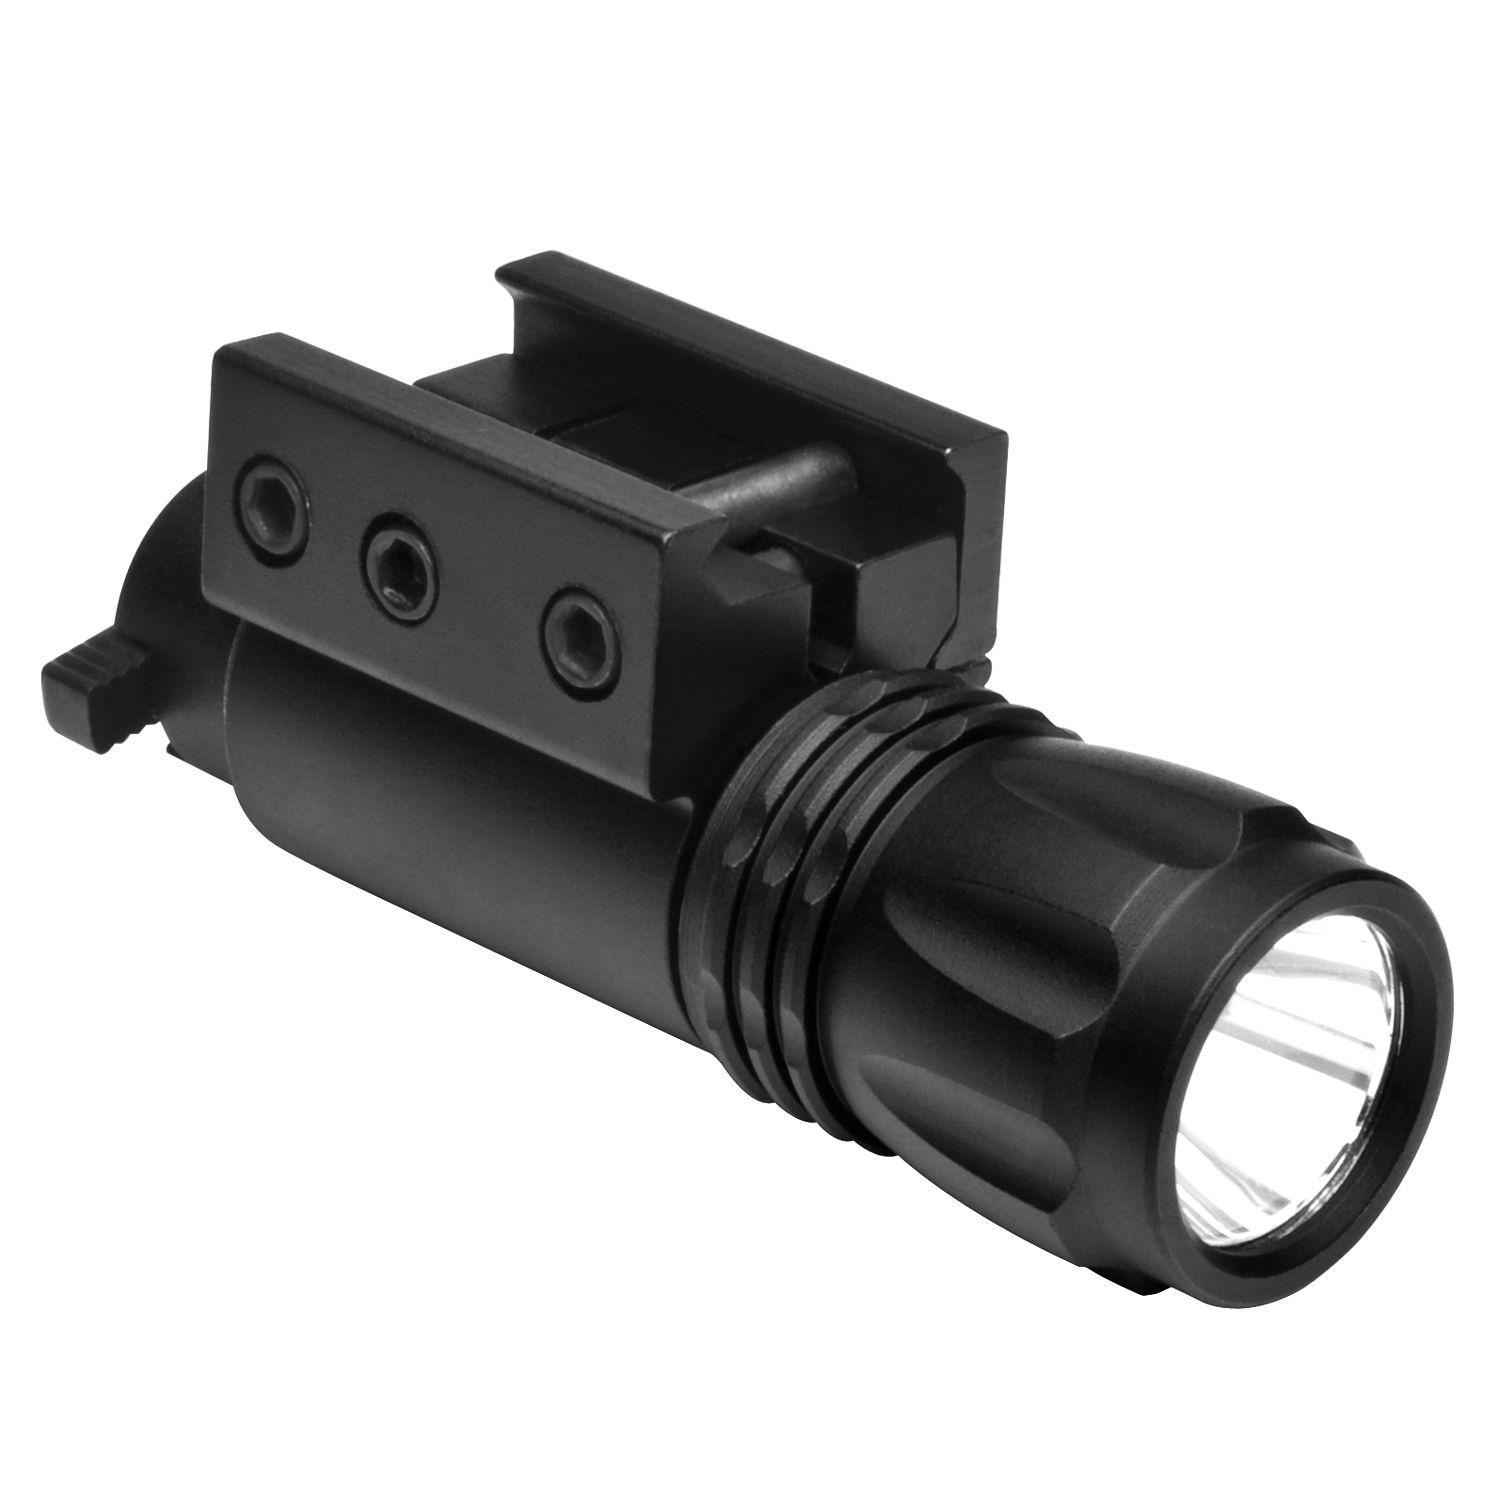 Ncstar Tactical Pistol Rifle Flashlight